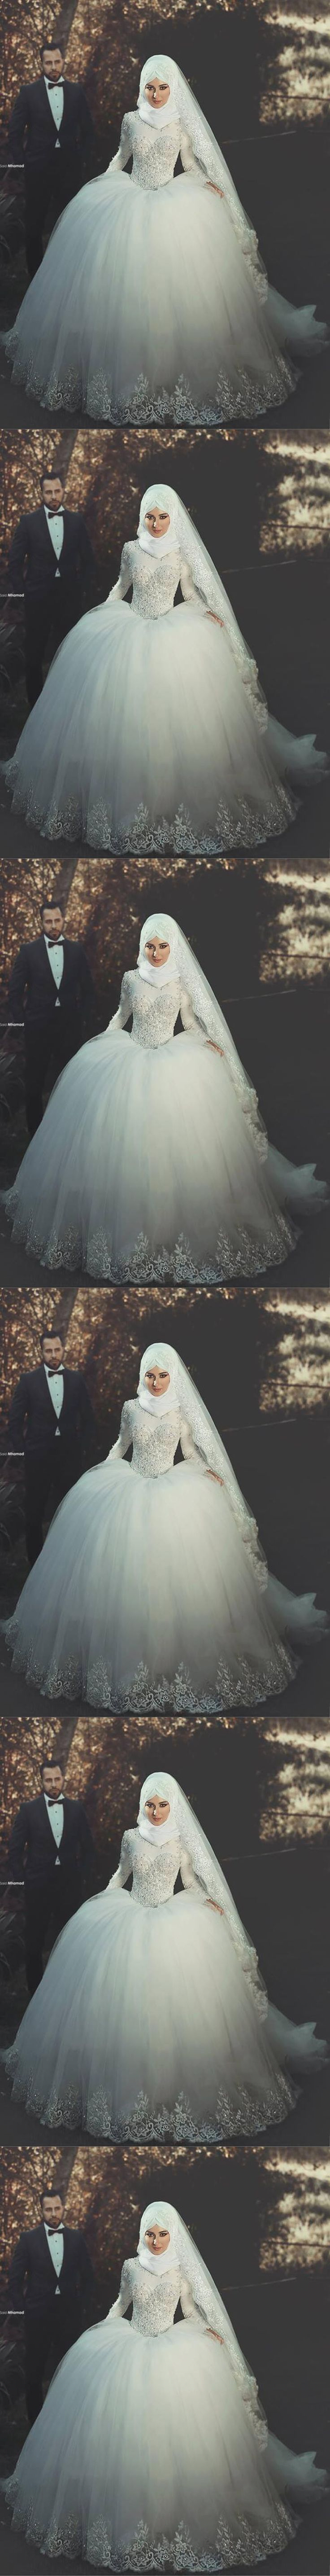 Muslim Hijab Wedding Dresses 2016 Ball Gown High Neck Long Sleeve Bride Dresses With Beaded Appliques $269